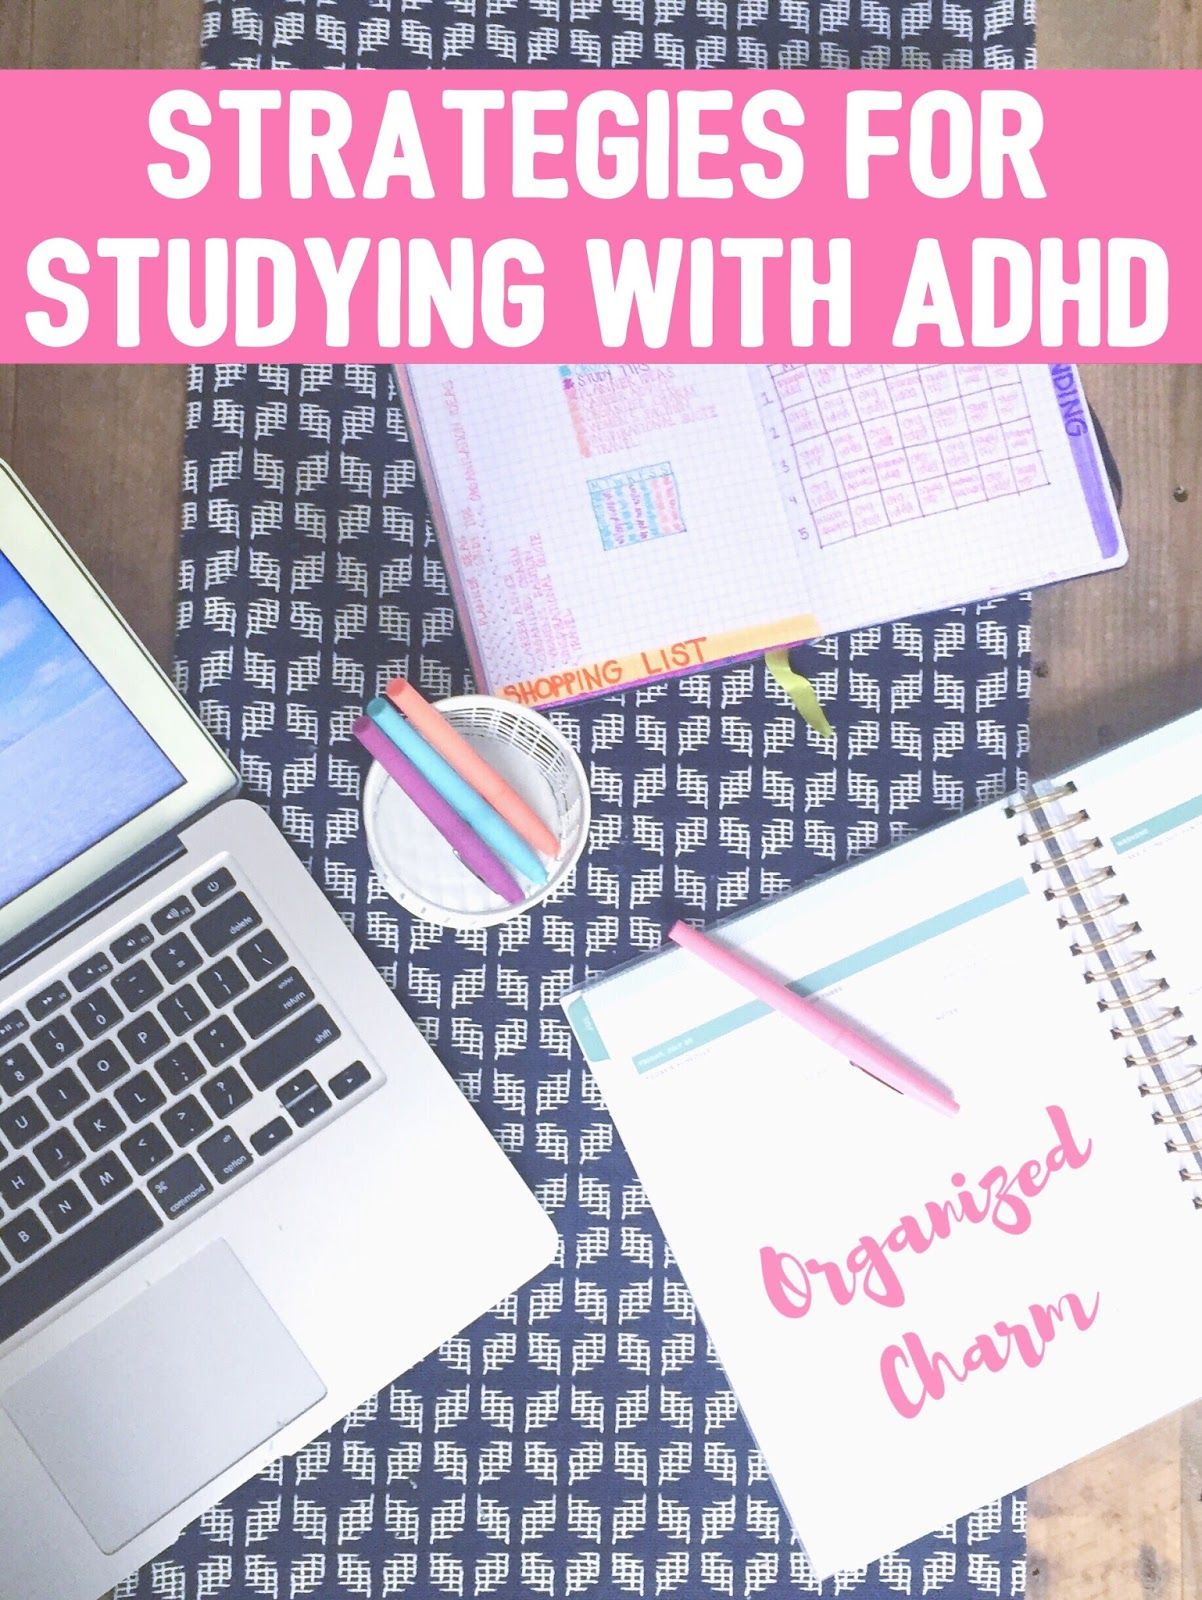 ADHD: Study Tips - YouTube